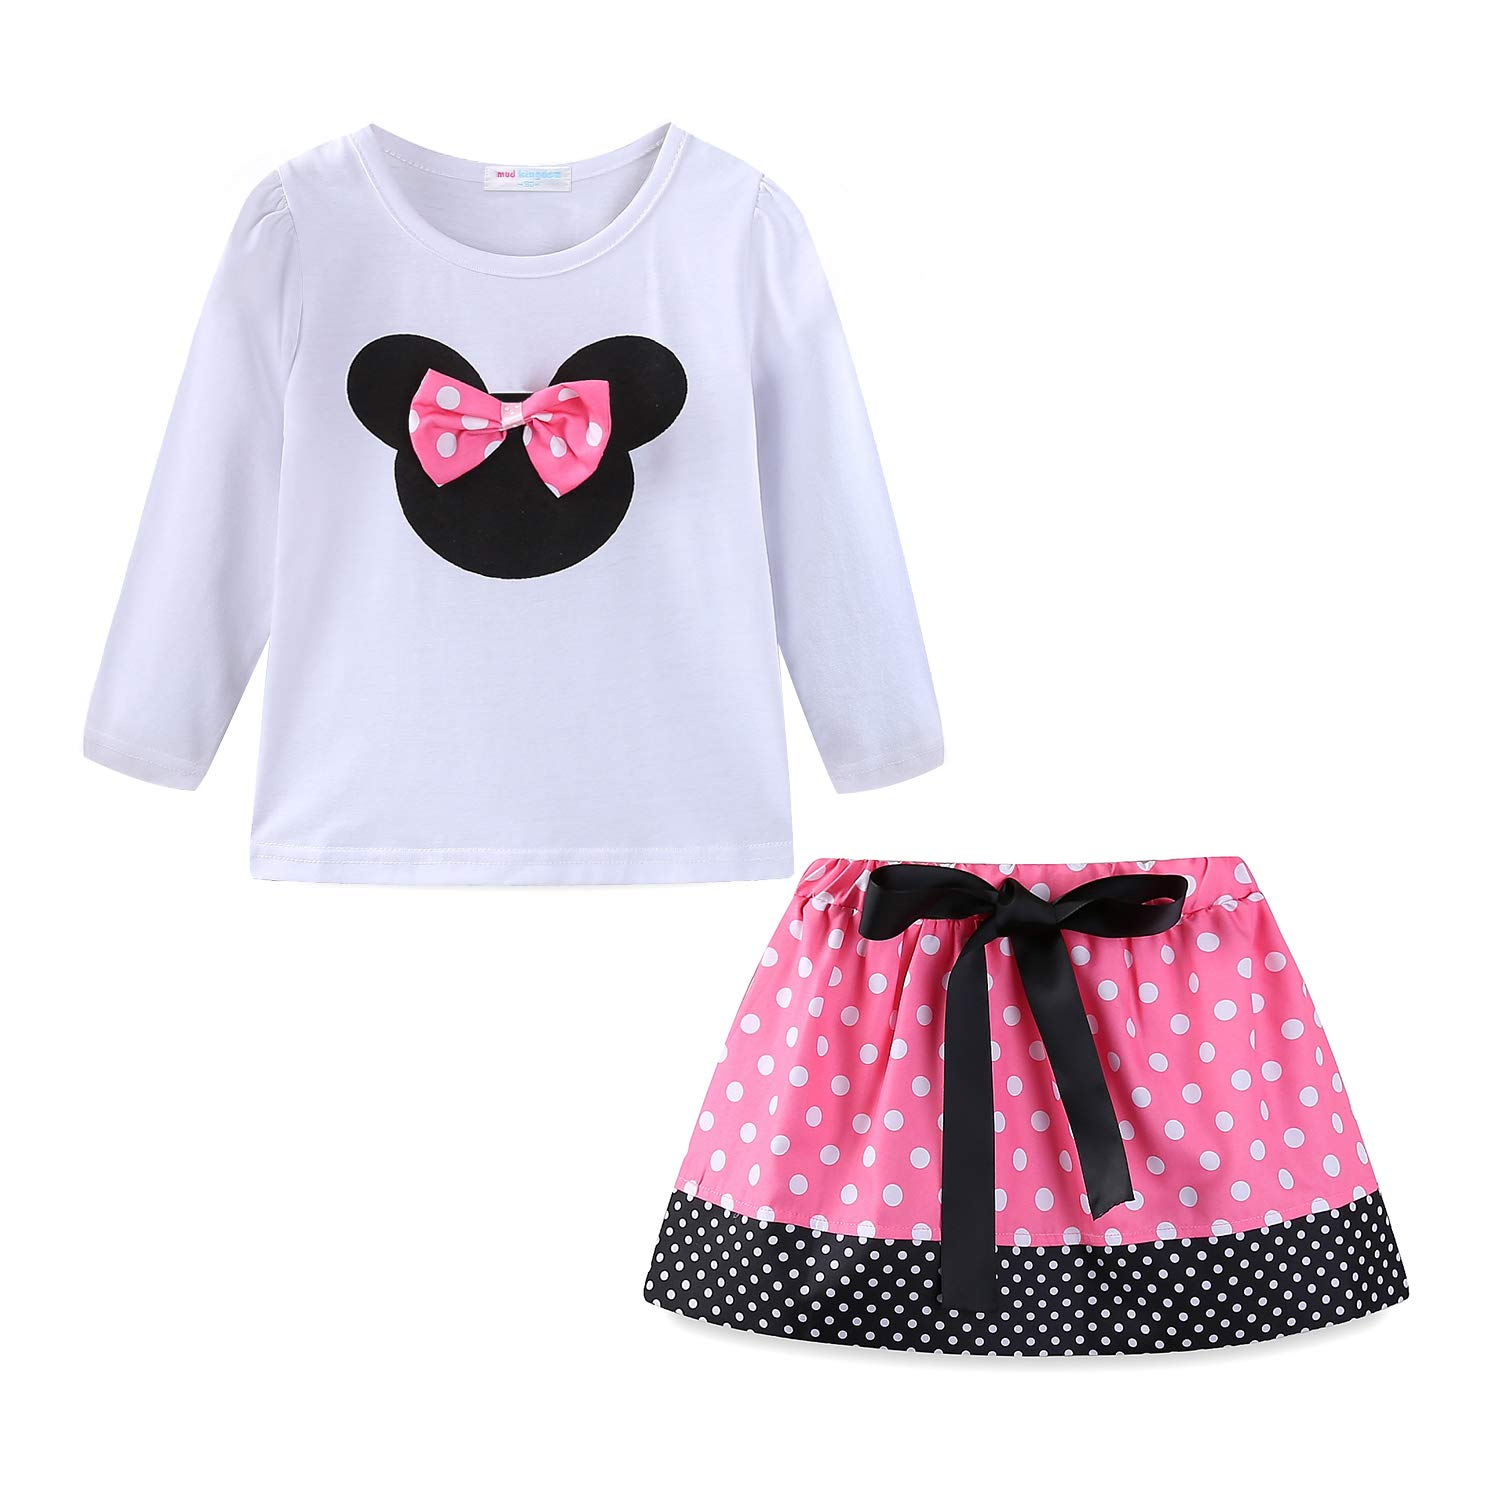 6d2c05c9f Mud Kingdom Little Girls Clothes Sets Cute Outfits Polka Dot: Amazon.ca:  Clothing & Accessories